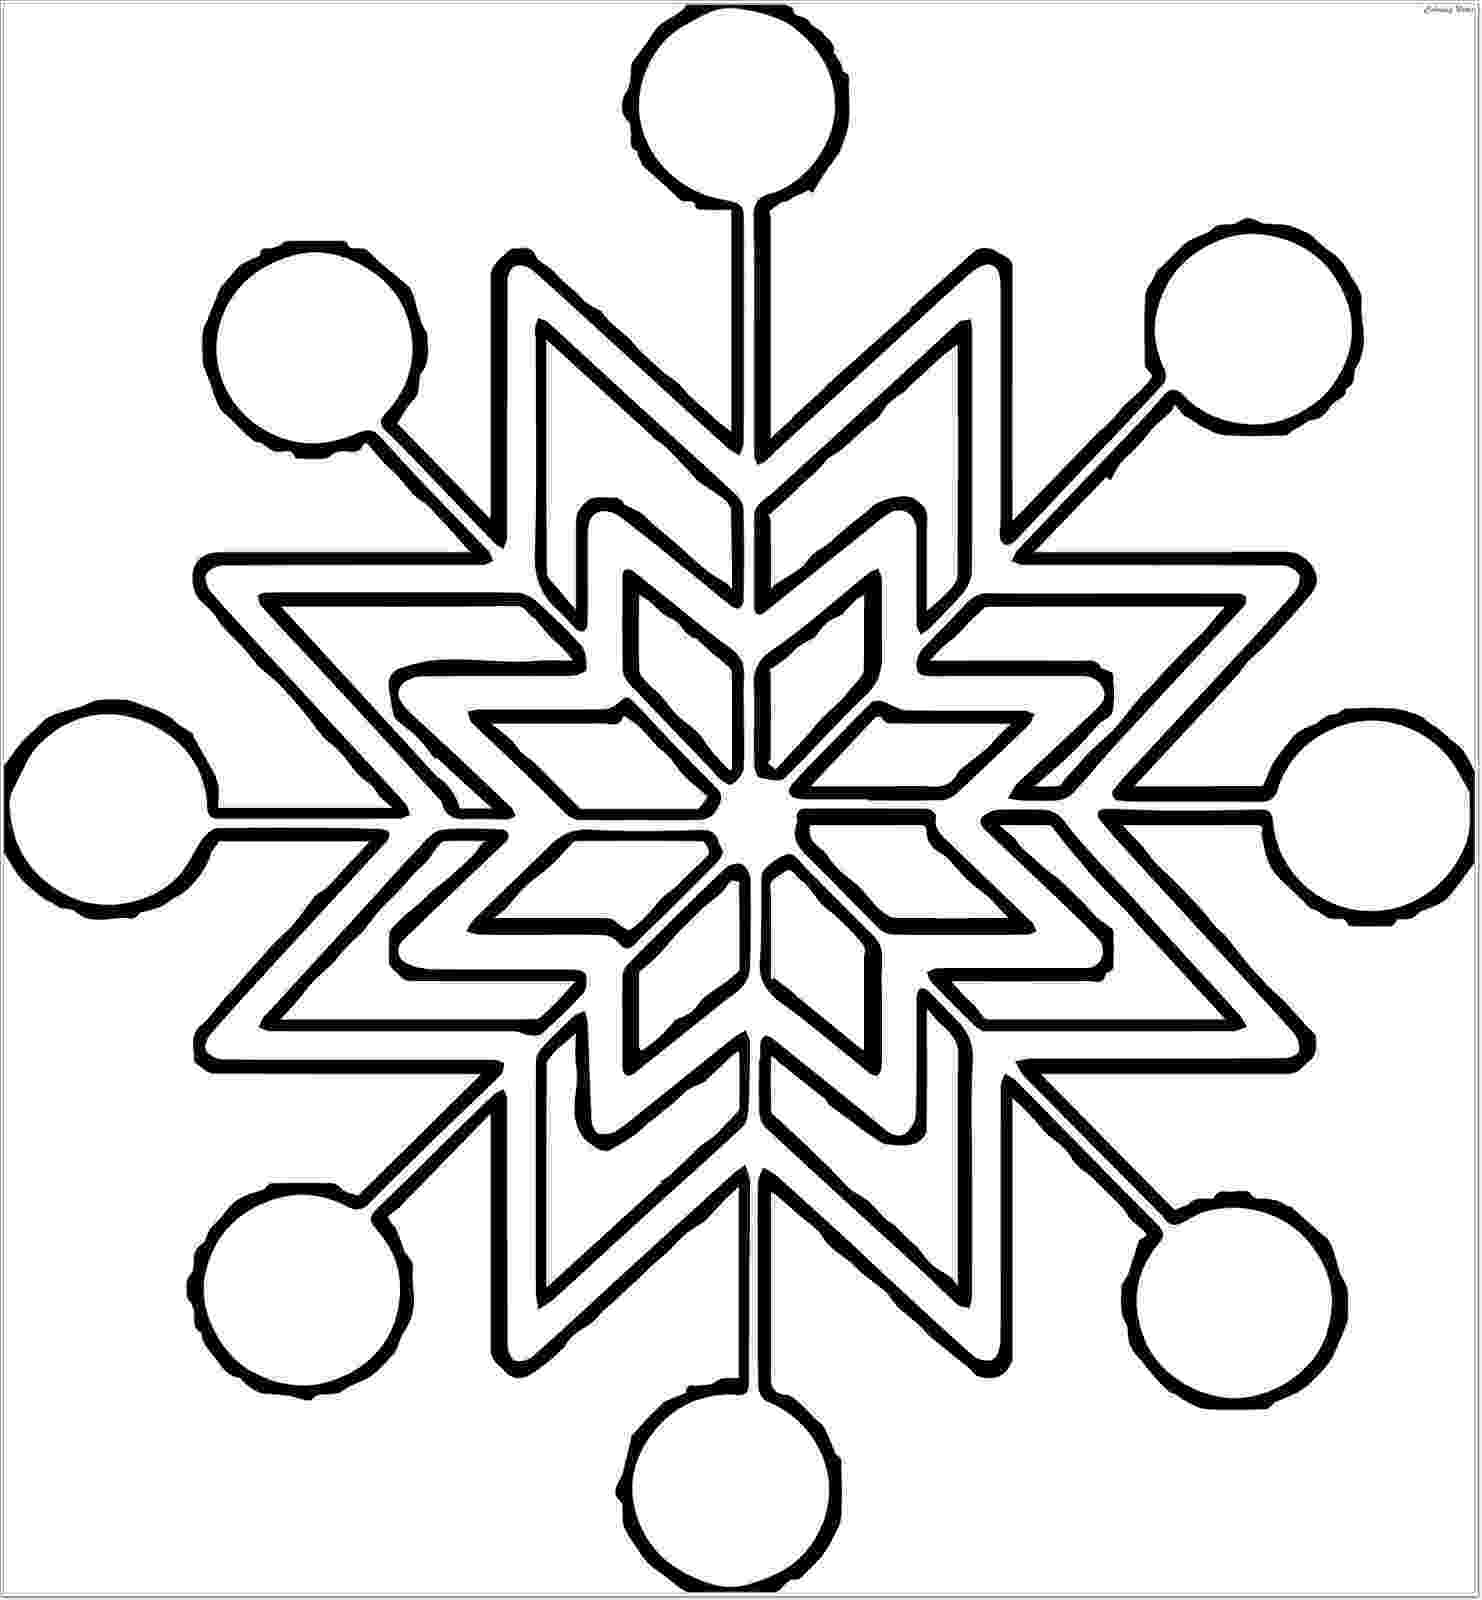 snow flake coloring pages christmas snowflakes coloring pages getcoloringpagescom coloring pages snow flake